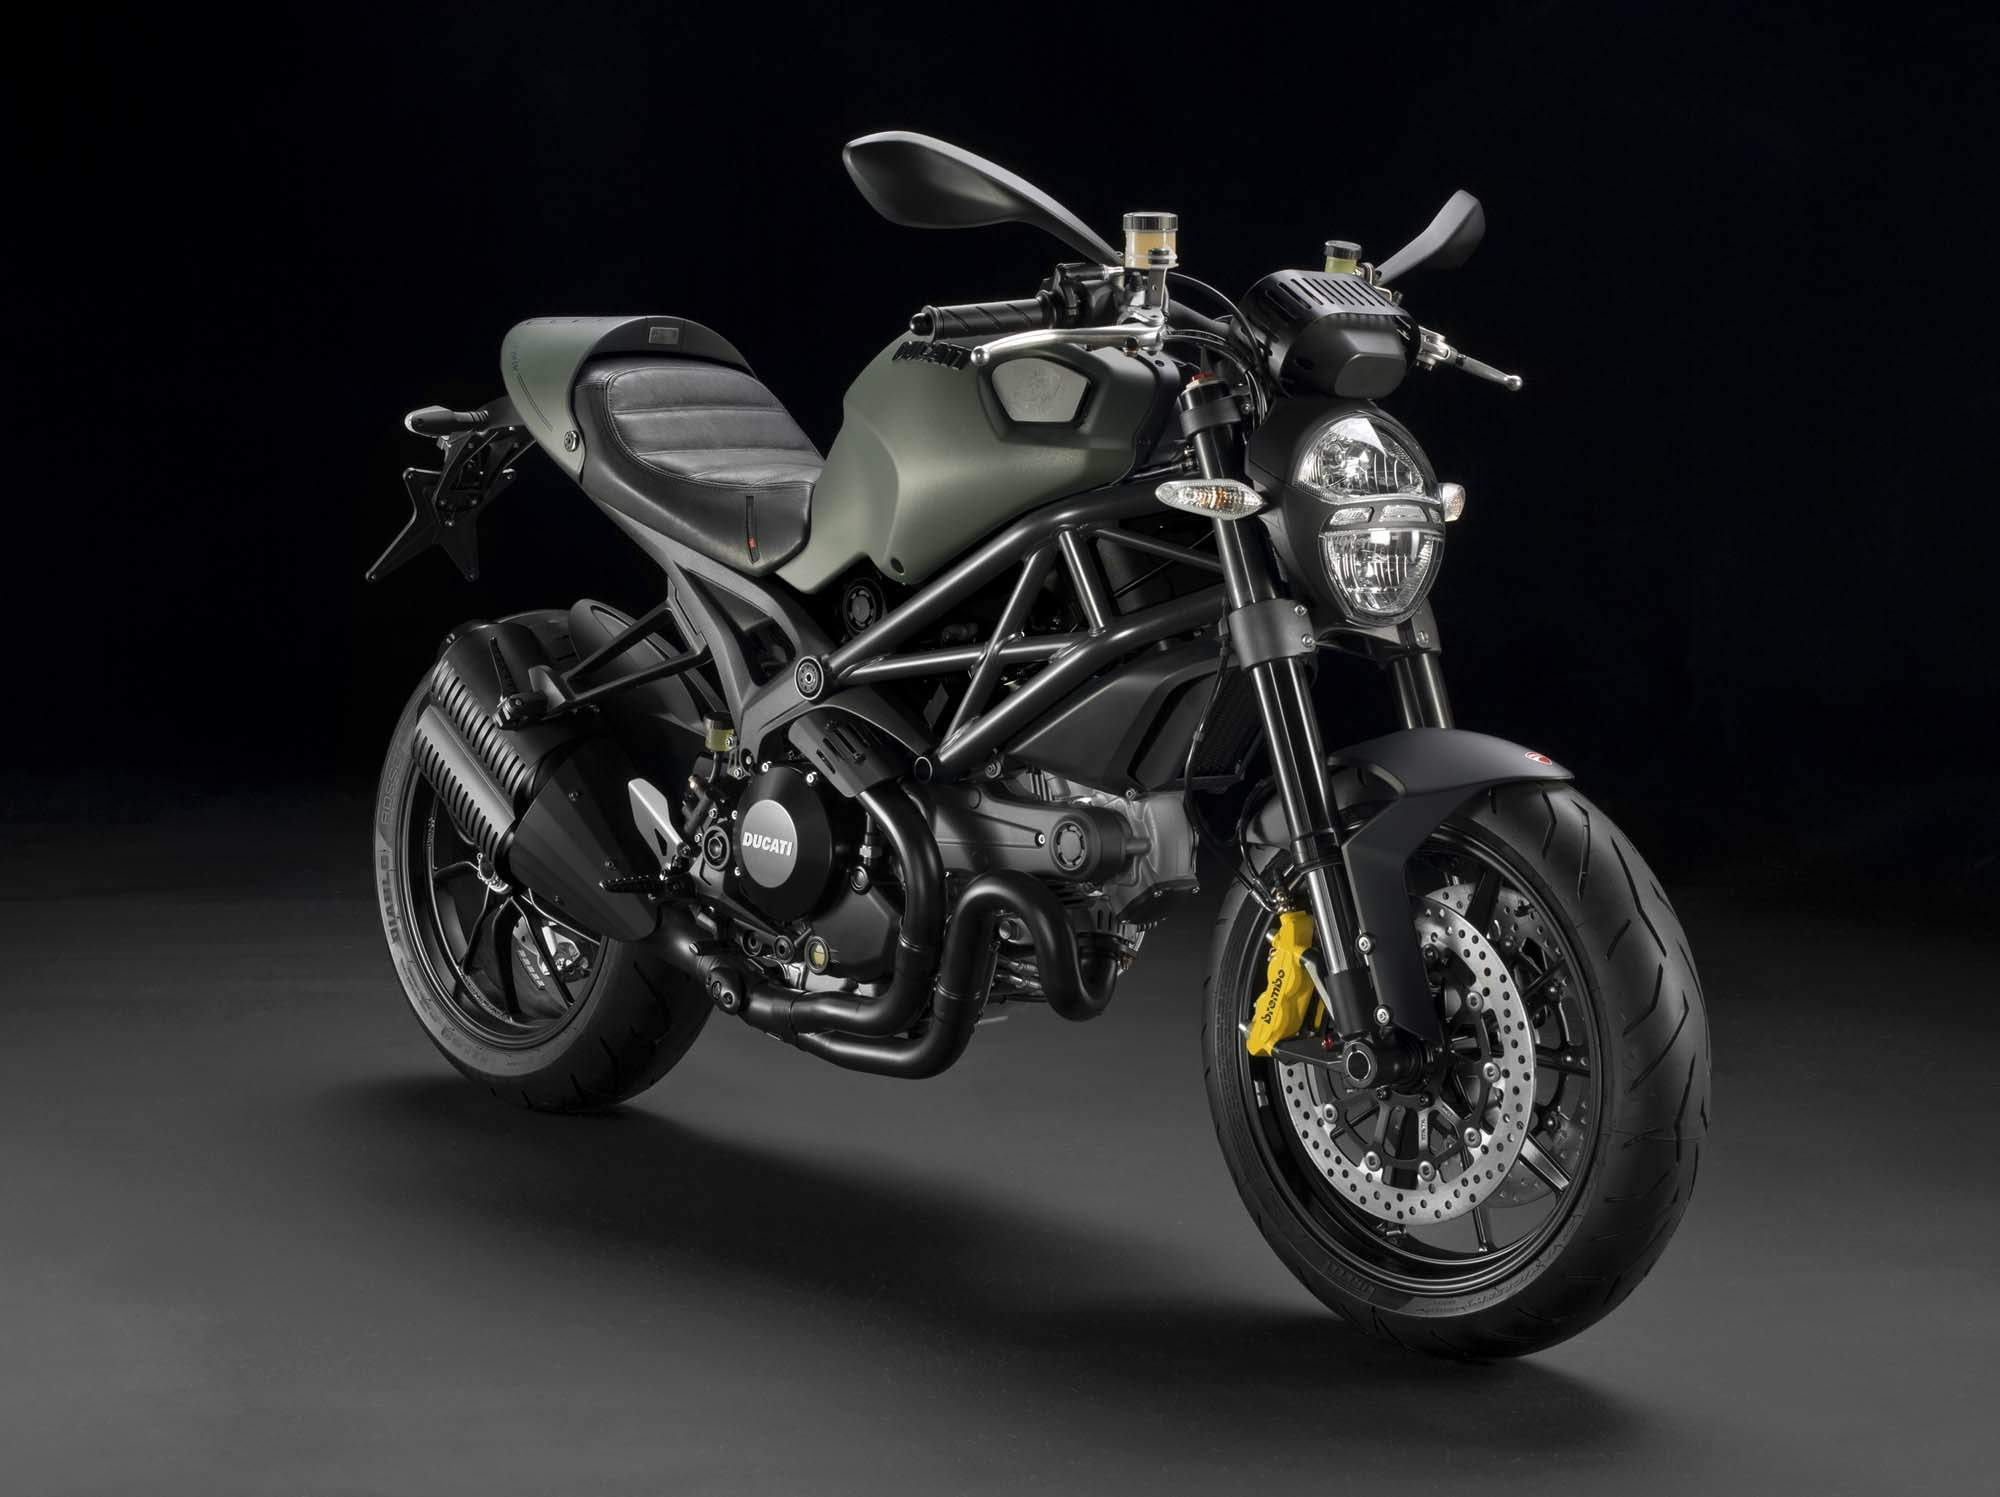 Мотоцикл Ducati Monster 1100 EVO Diesel Special Edition 2012